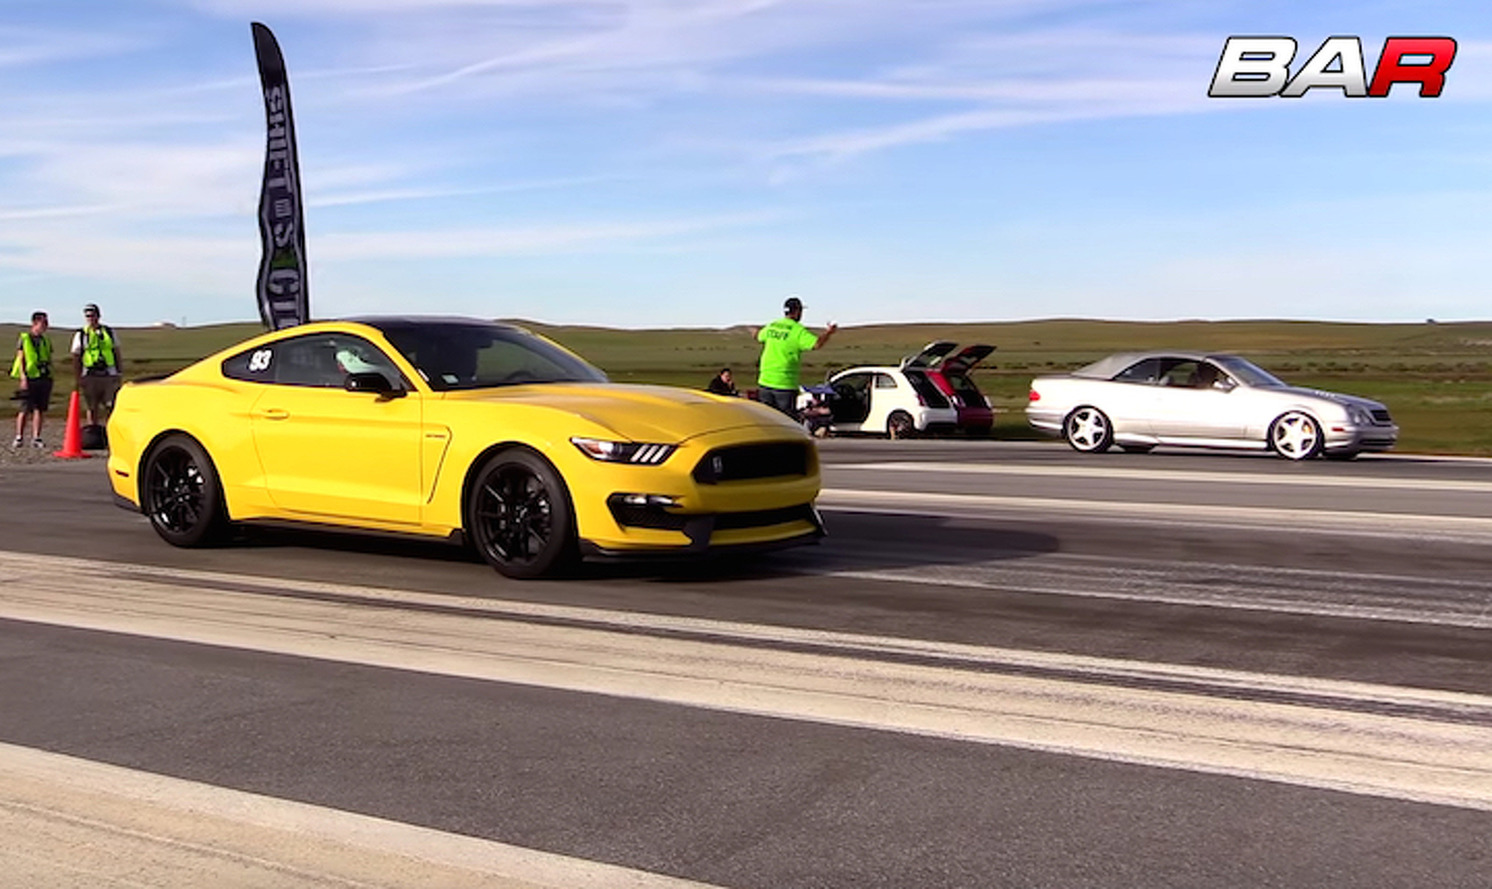 Mustang Shelby GT350 vs Mercedes CLK55 AMG Cabriolet is an Odd Matchup